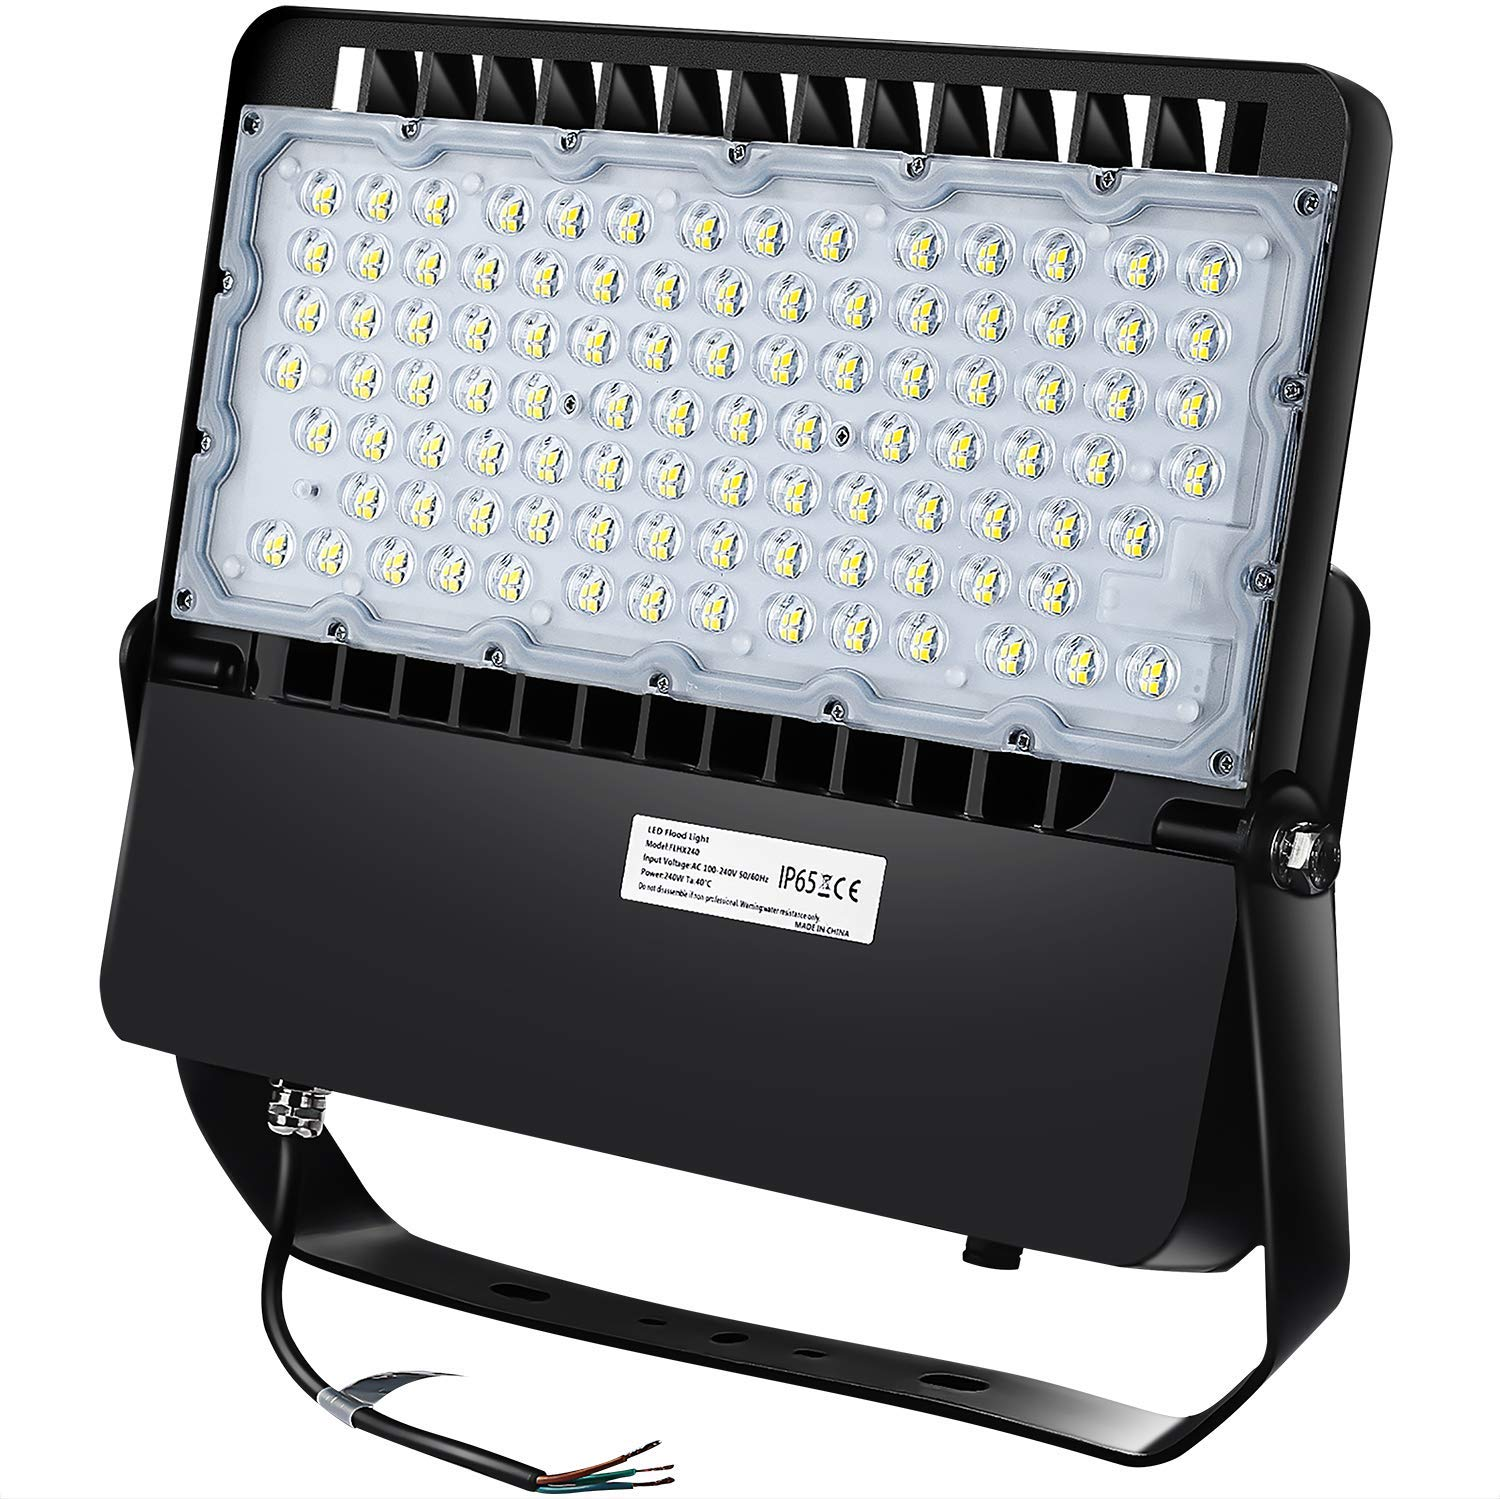 Ledmo Led Stadium Flood Lights Outdoor 1500w Equivalent 36000lm Super Bright Led Led Arena Lights 100 277v Ip65 Waterproof 5000k Daylight White 240w Commercial Lighting For Sports Fields And Counts Amazon Com